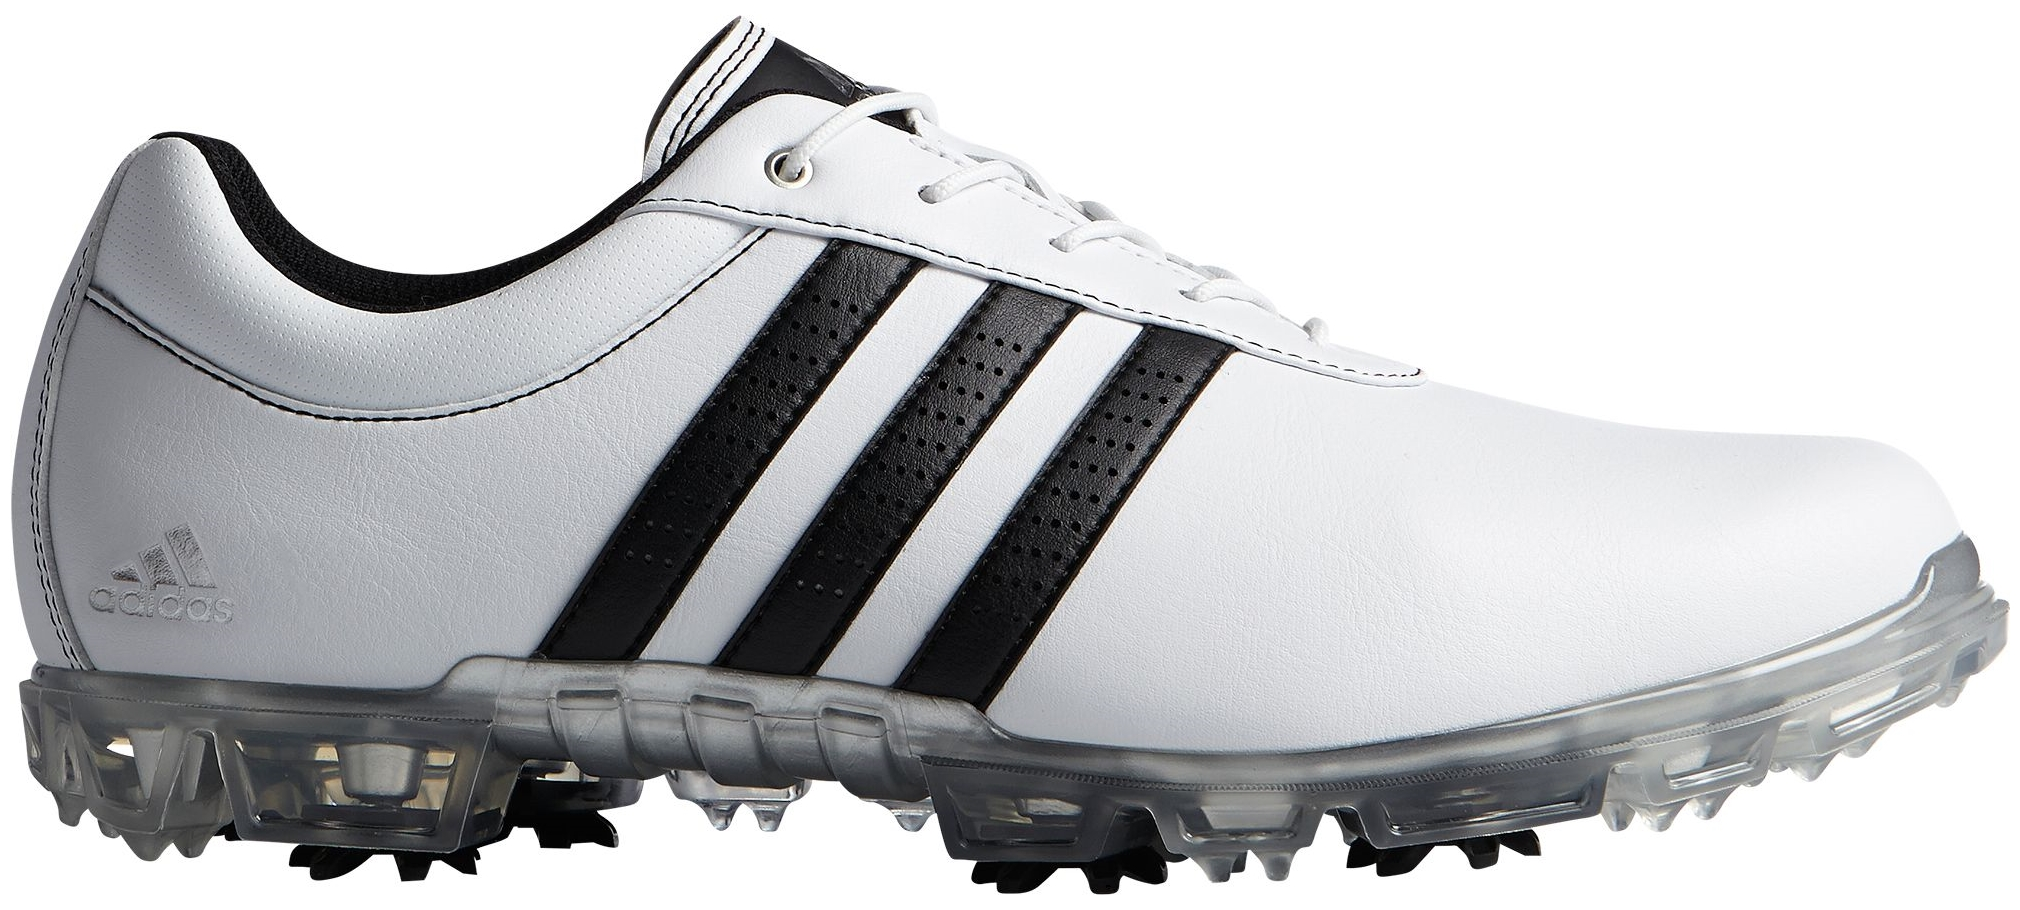 adidas Adipure Flex Golf Shoes by